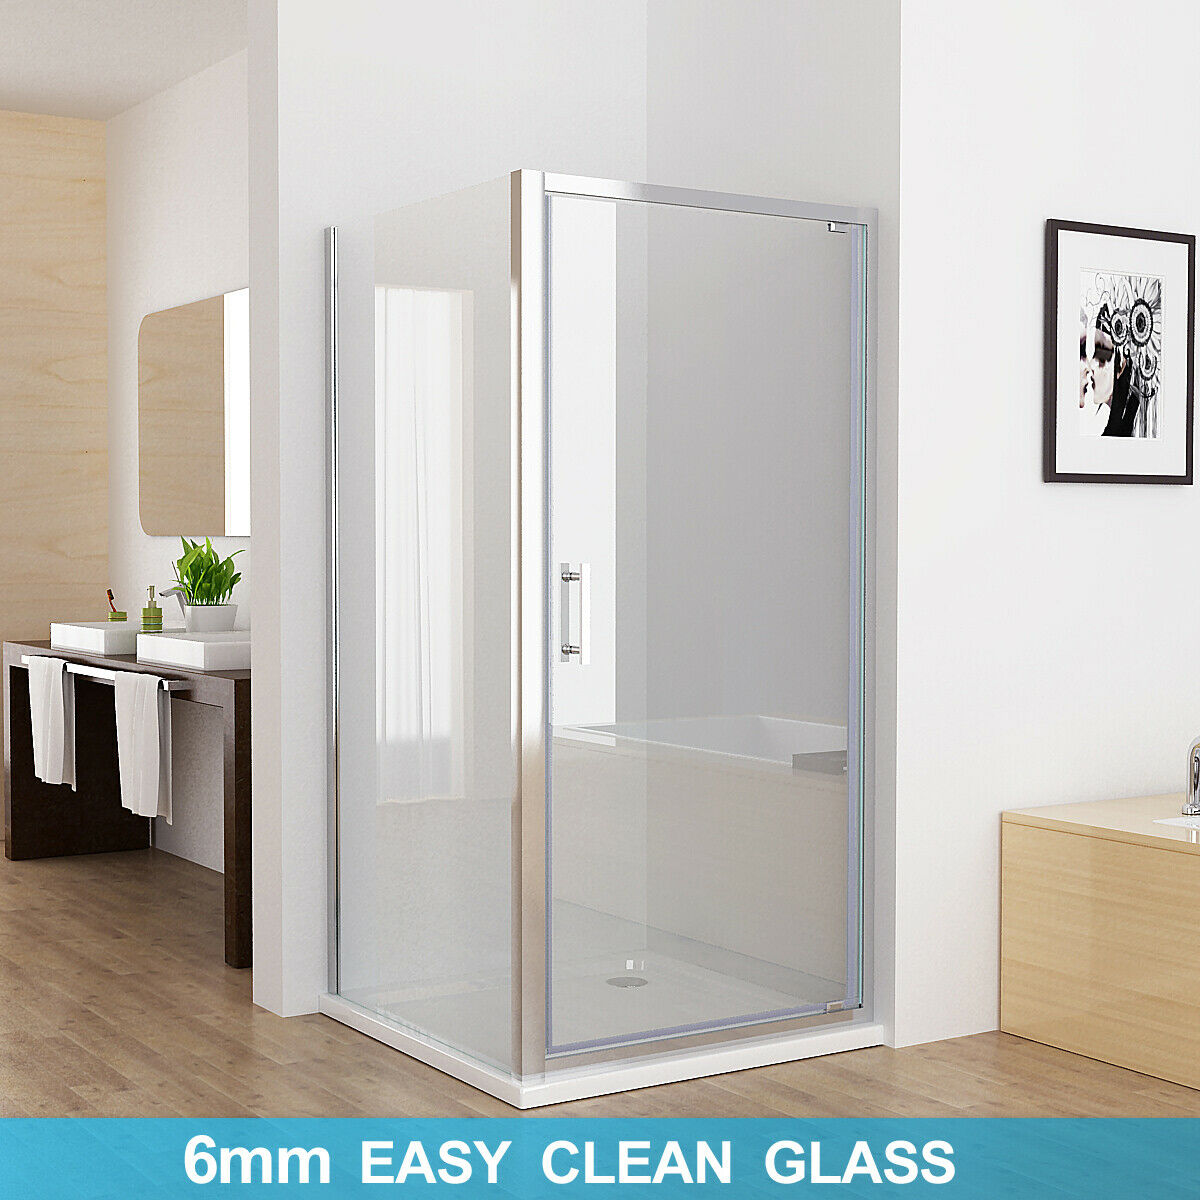 Shower Enclosure Pivot Hinged Door With Side Panel 6mm Nano Glass 760mm